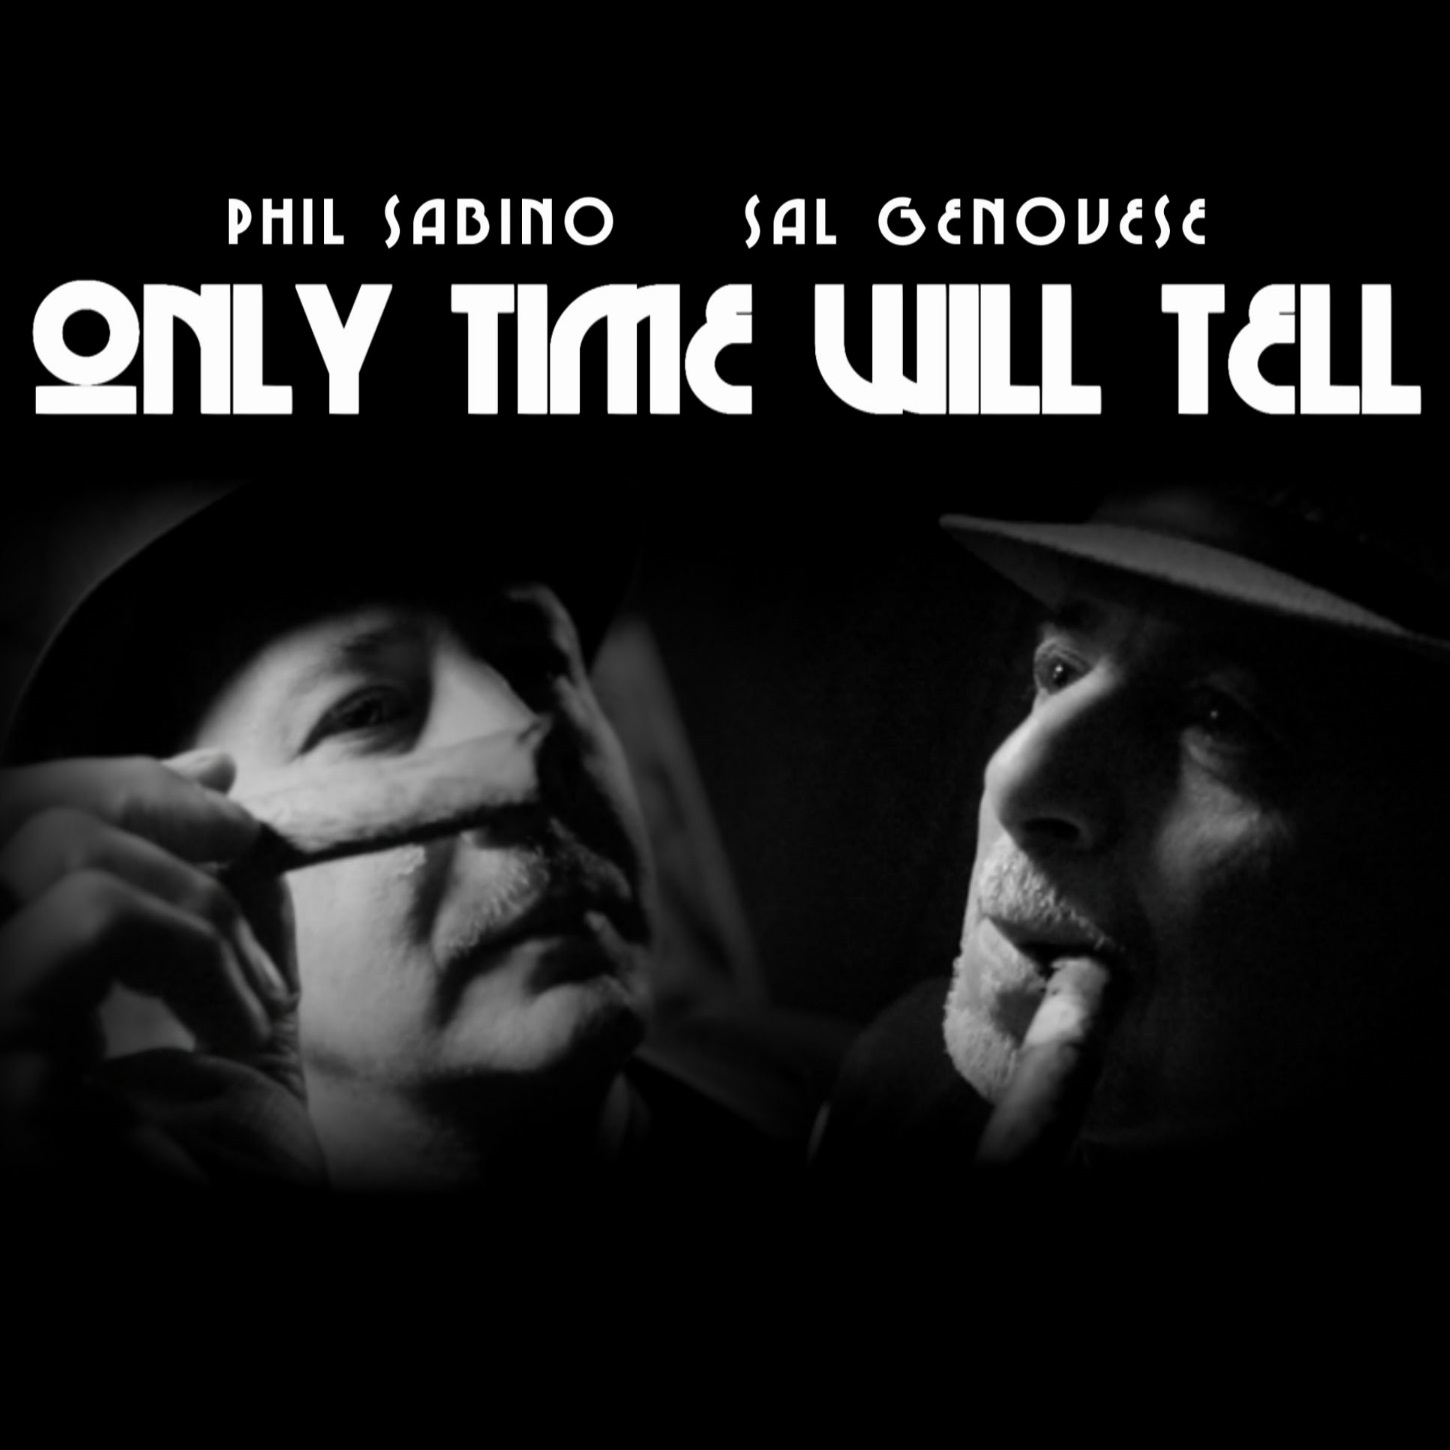 Only Time Will Tell full movie in hindi free download hd 1080p